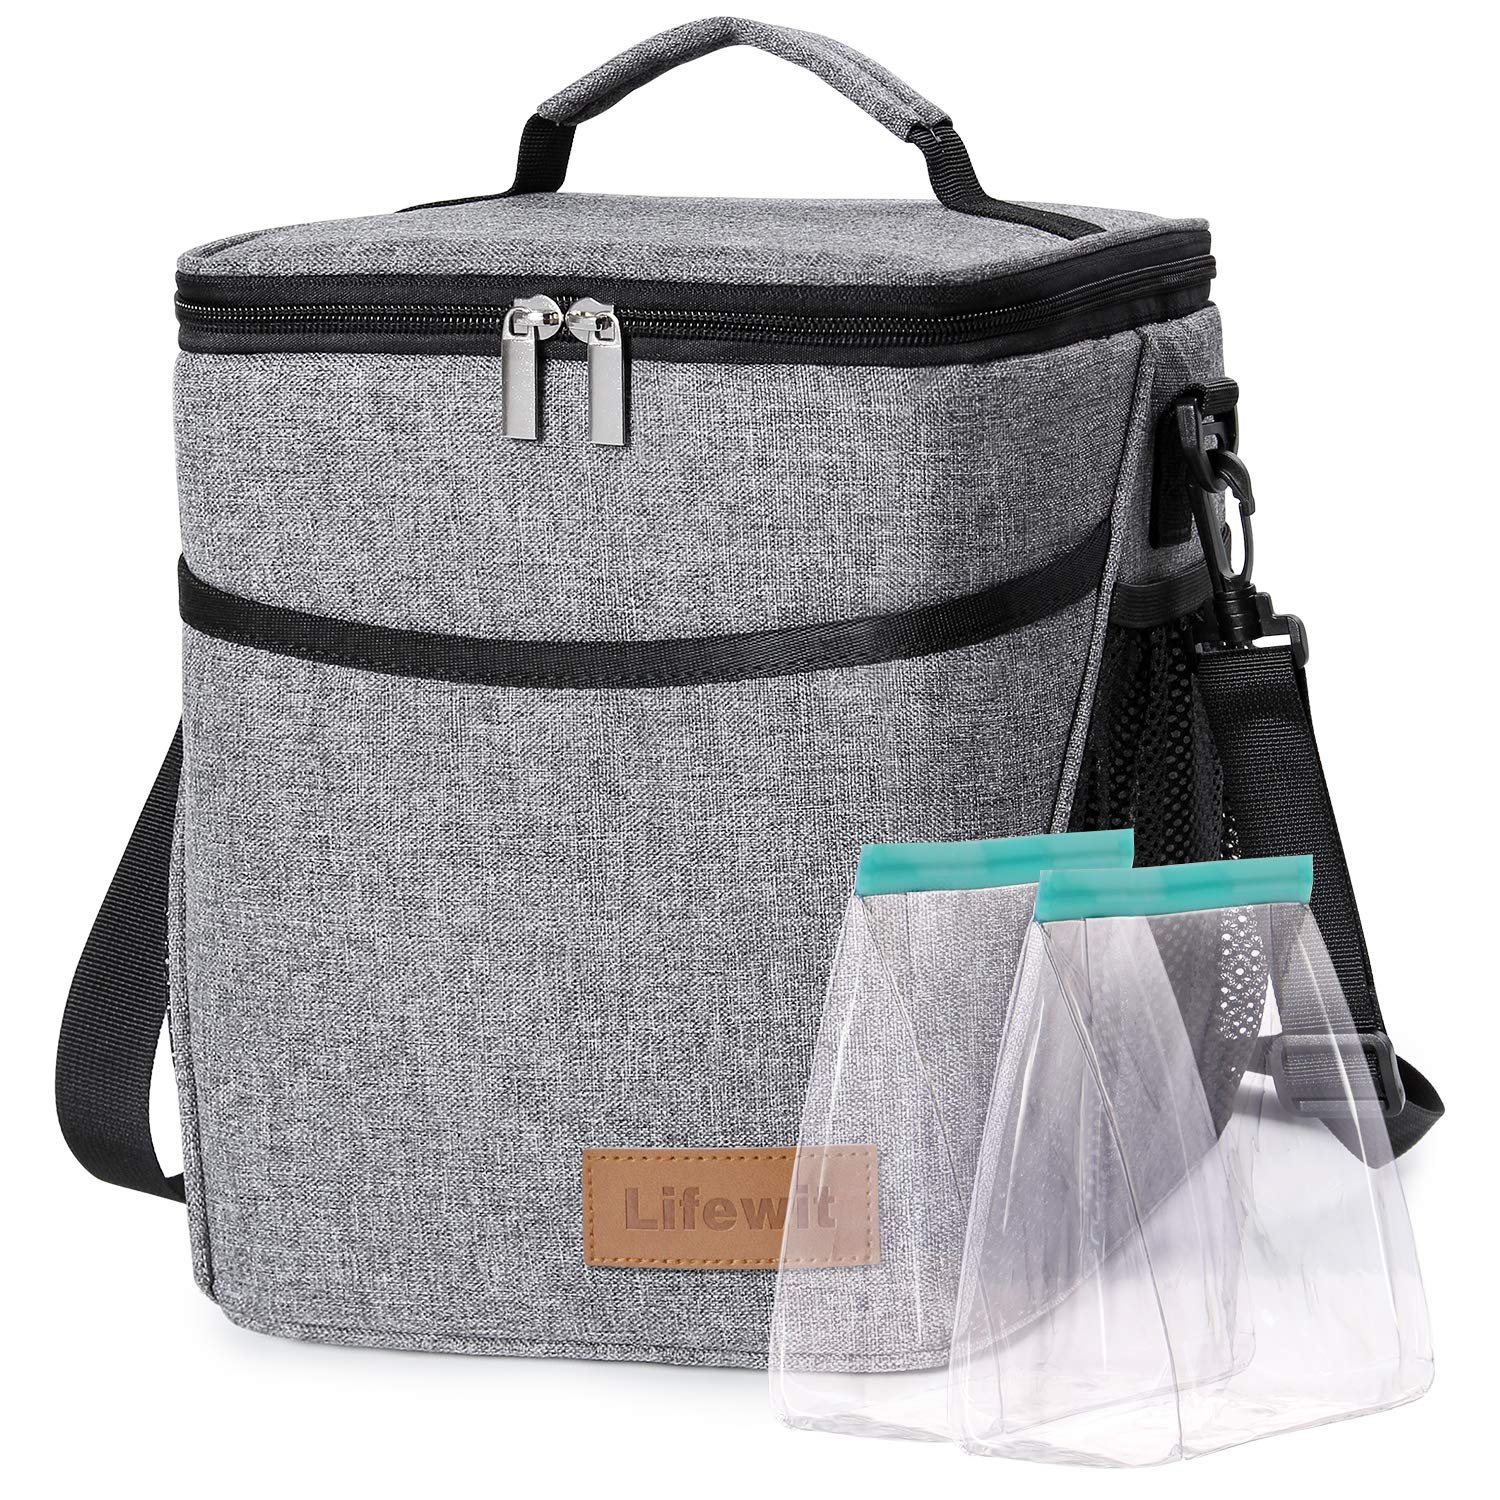 Lifewit Lunch Box for Adult 9L Insulated Large Lunch Bag Leakproof Thermal Bento Bag for Work, Grey by Lifewit